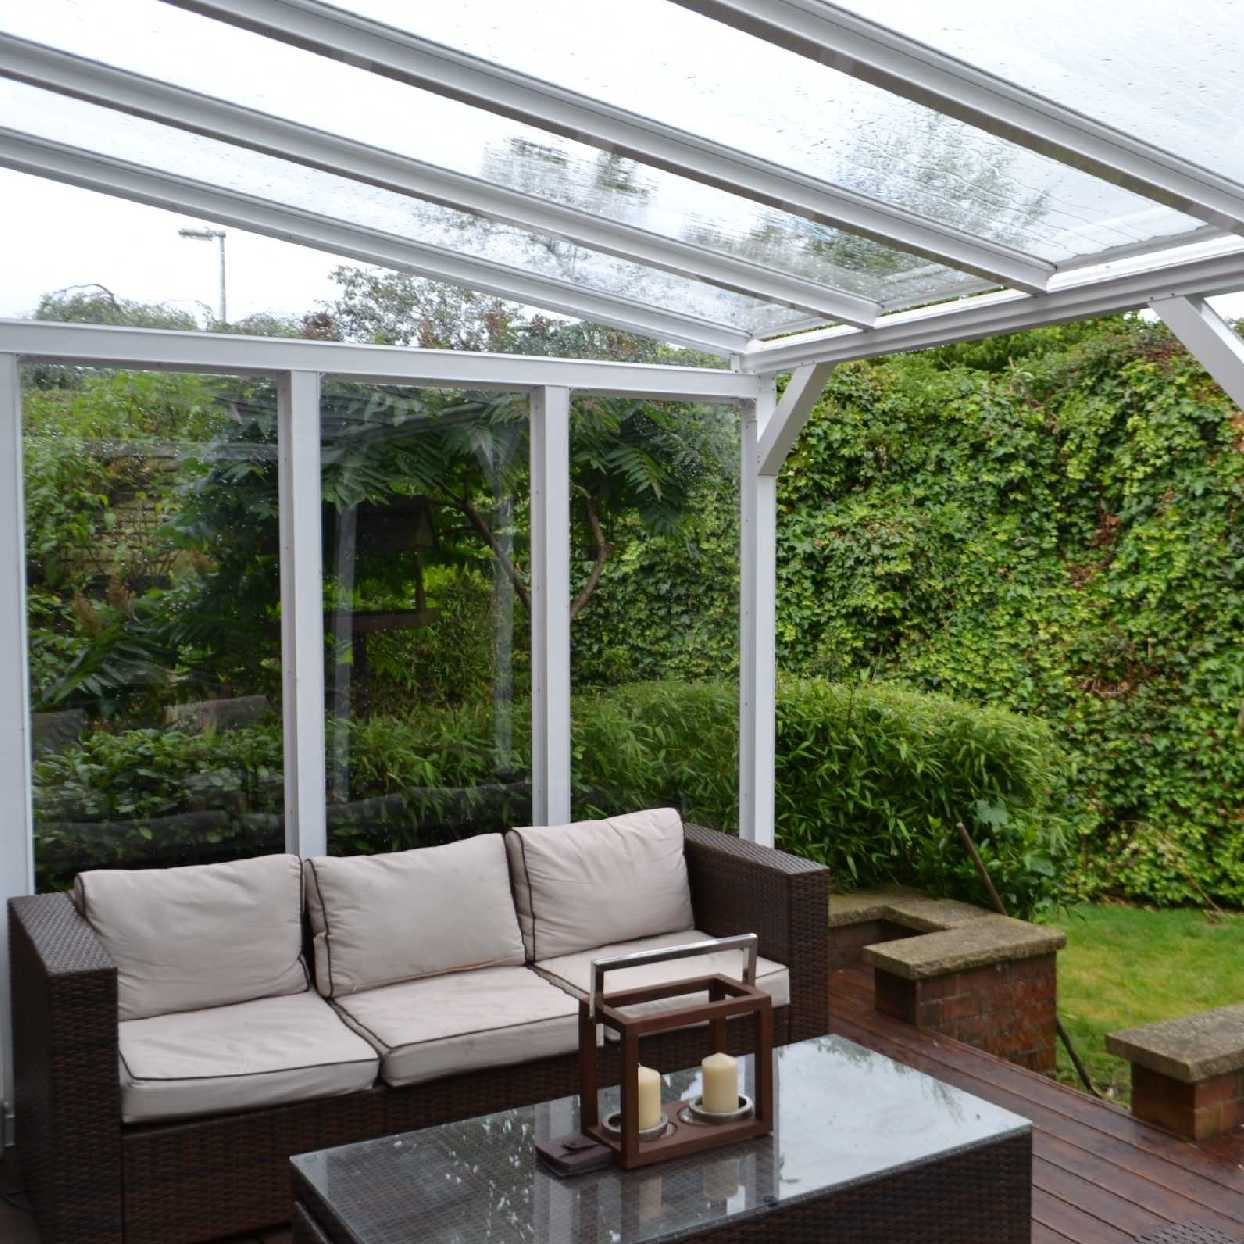 Great selection of Omega Smart White Lean-To Canopy with 16mm Polycarbonate Glazing - 11.4m (W) x 3.5m (P), (5) Supporting Posts